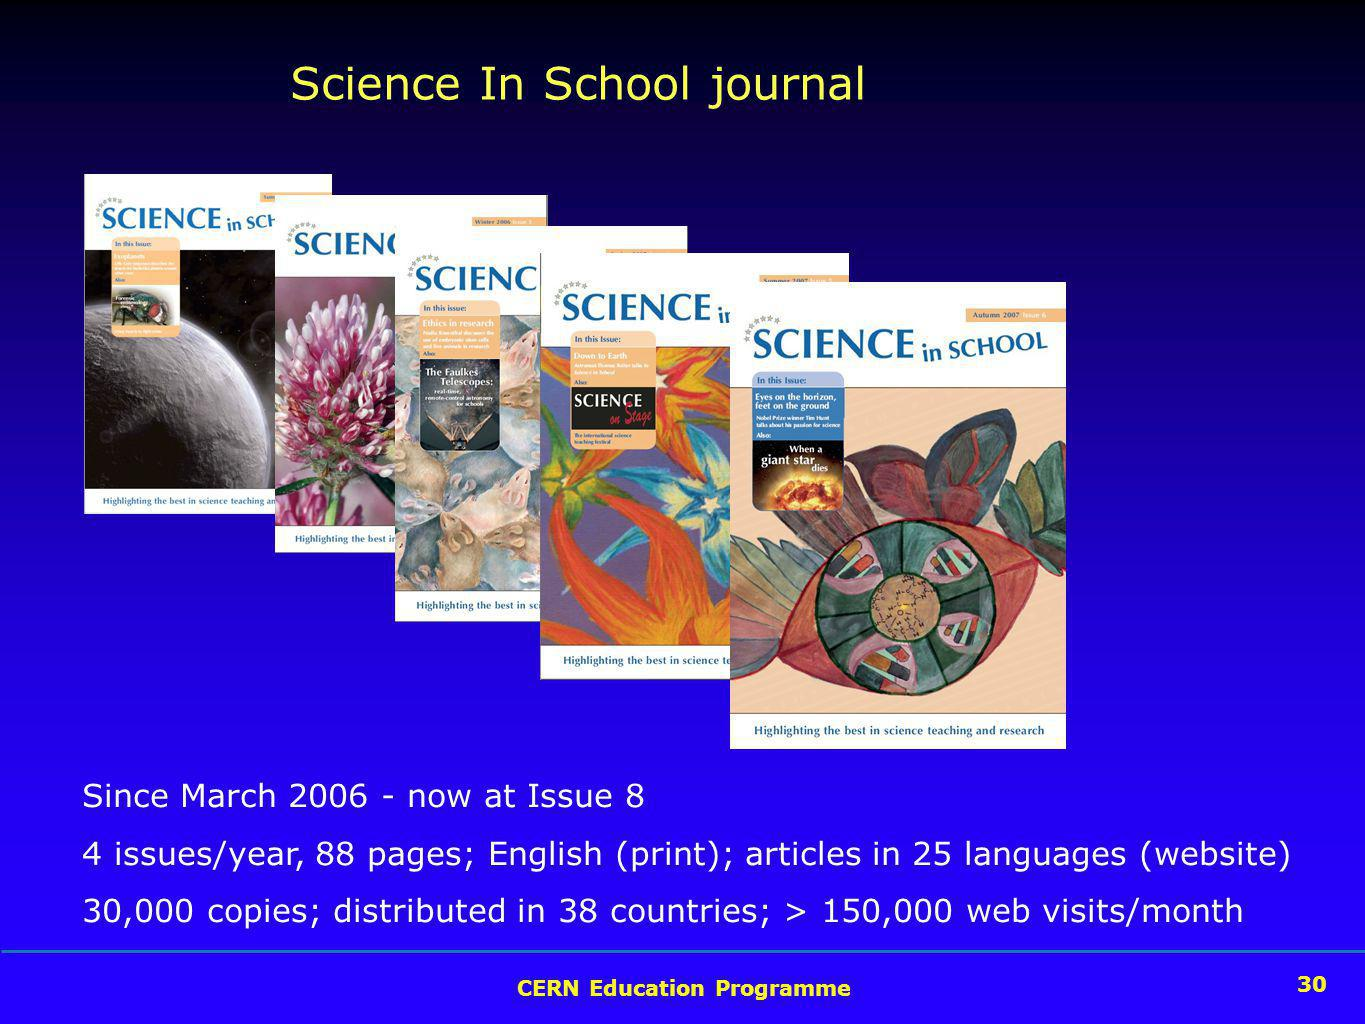 30 CERN Education Programme 30 Science In School journal Since March now at Issue 8 4 issues/year, 88 pages; English (print); articles in 25 languages (website) 30,000 copies; distributed in 38 countries; > 150,000 web visits/month